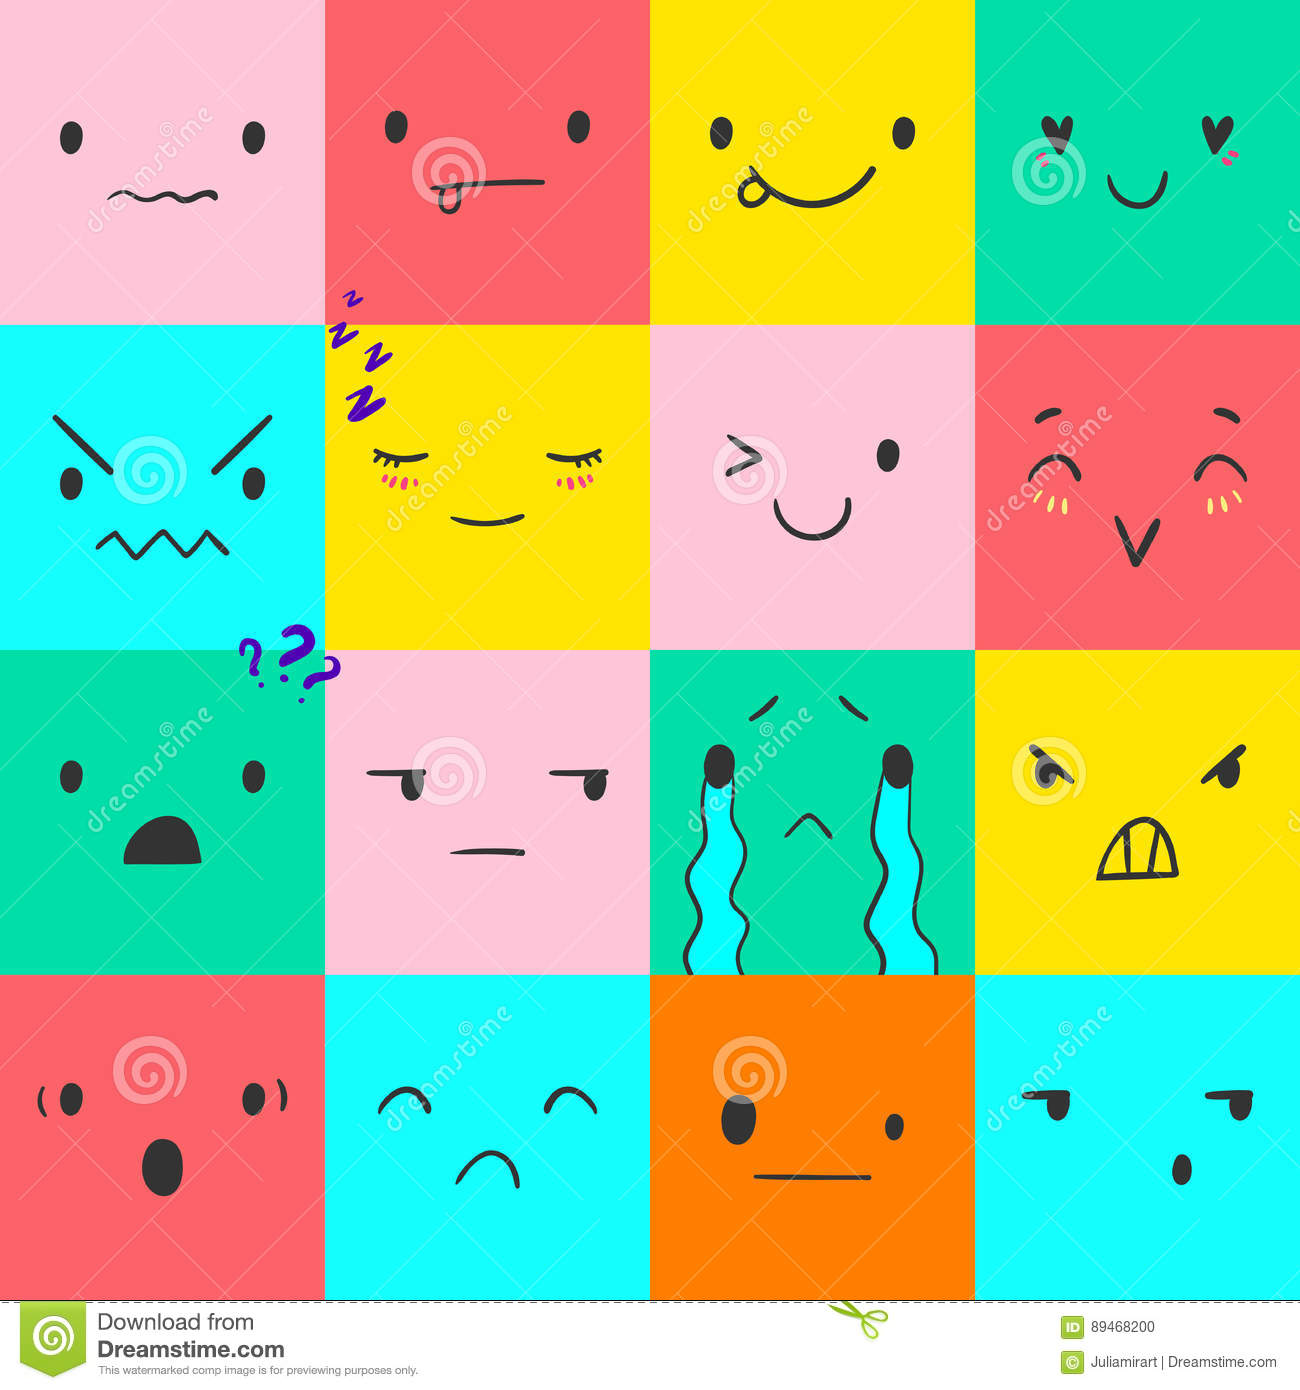 Square emoticons with different emotions, vector set of various hand-drawn  cute expressions, EPS 10